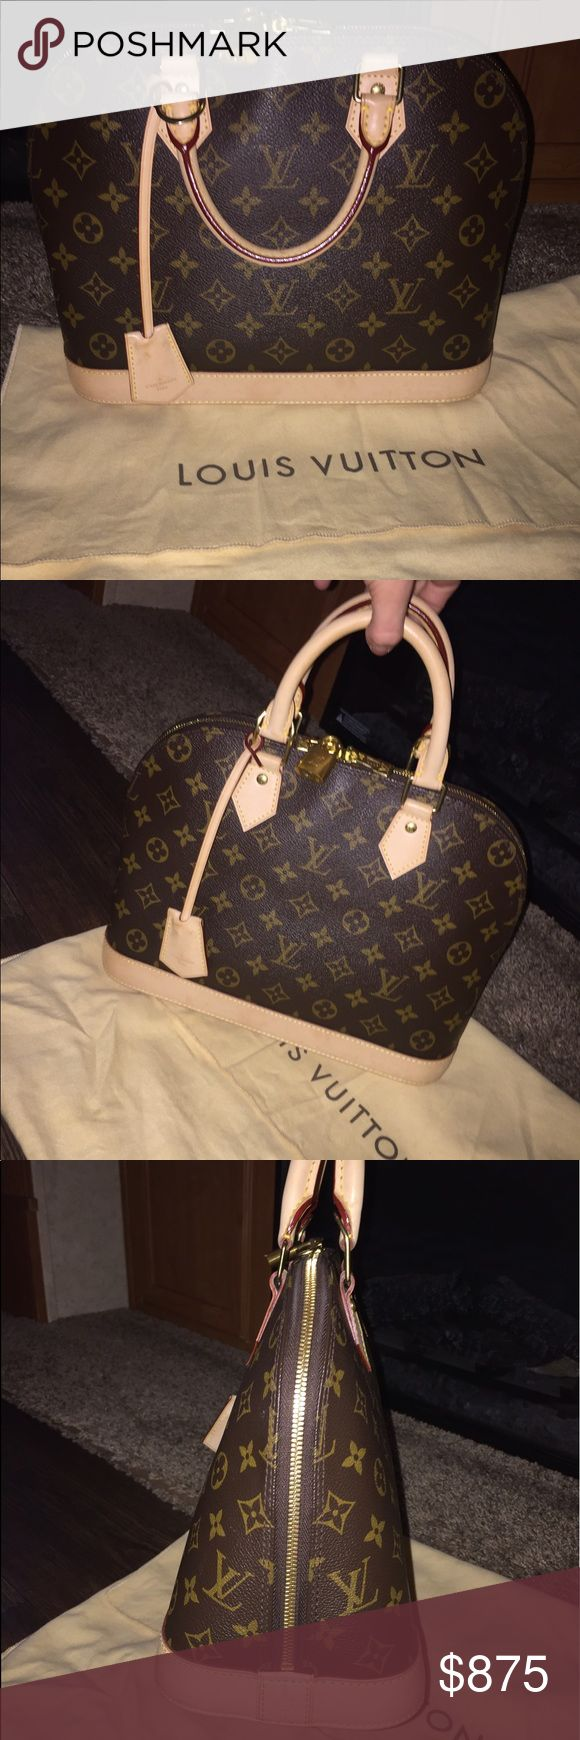 AUTHENTIC LOUIS VUITTON ALMA PM MONOGRAM BAG  AUTHENTIC LOUIS VUITTON ALMA PM BAG PURCHASED IN DALLAS NORTH PARK MALL DEC 2013 In Excellent Condition There Is A Water Mark On One Side you can't even tell it's there cuz the bag is literally just like knew I only used it one time dust bag included Louis Vuitton Bags Shoulder Bags